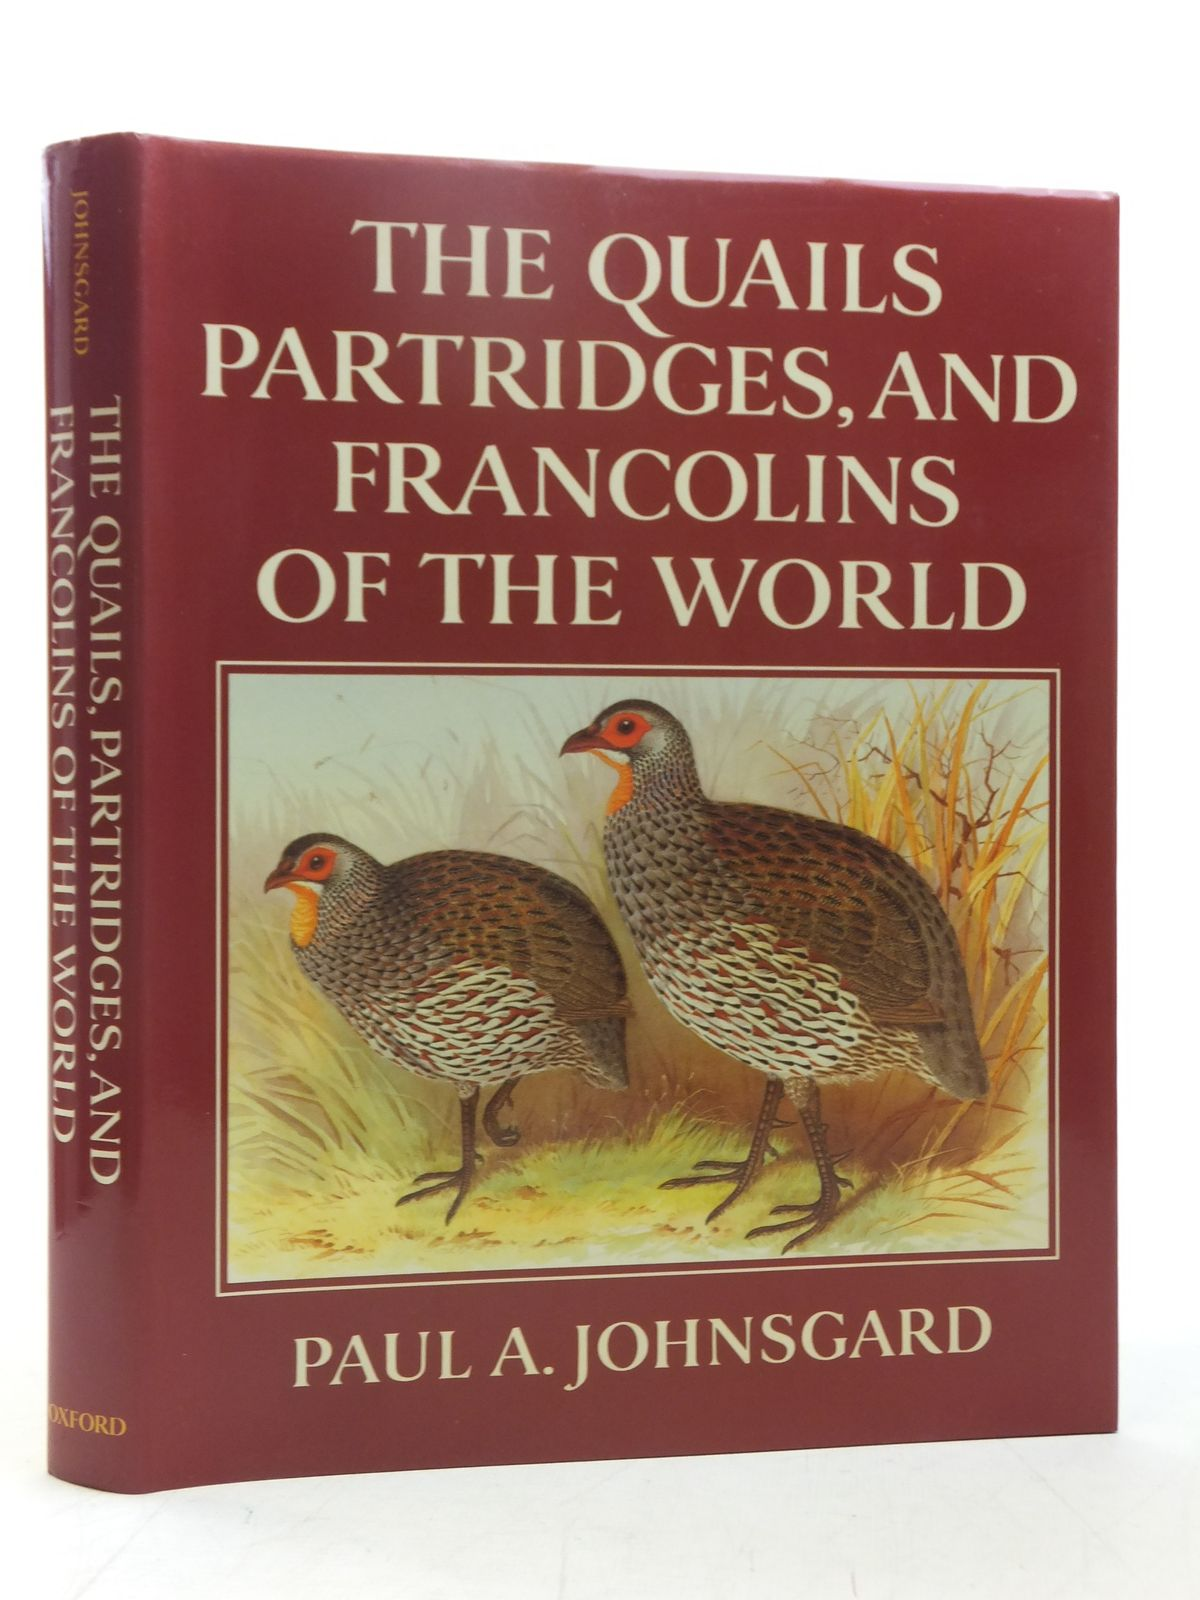 Photo of THE QUAILS PARTRIDGES, AND FRANCOLINS OF THE WORLD written by Johnsgard, Paul A. illustrated by Jones, Henry published by Oxford University Press (STOCK CODE: 1607458)  for sale by Stella & Rose's Books